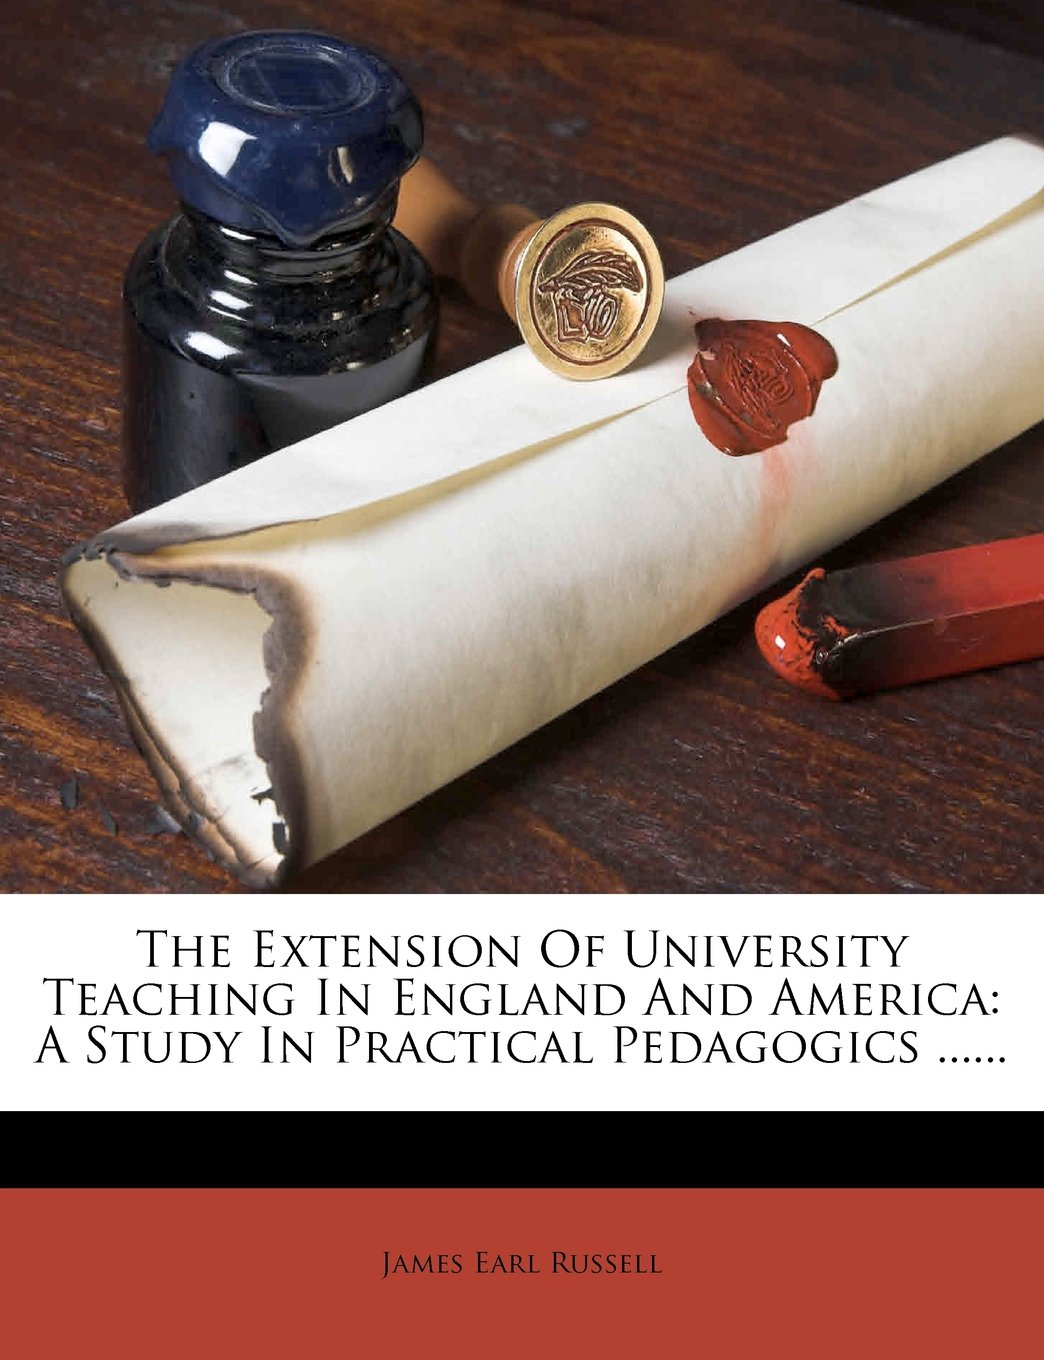 Read Online The Extension Of University Teaching In England And America: A Study In Practical Pedagogics ...... PDF